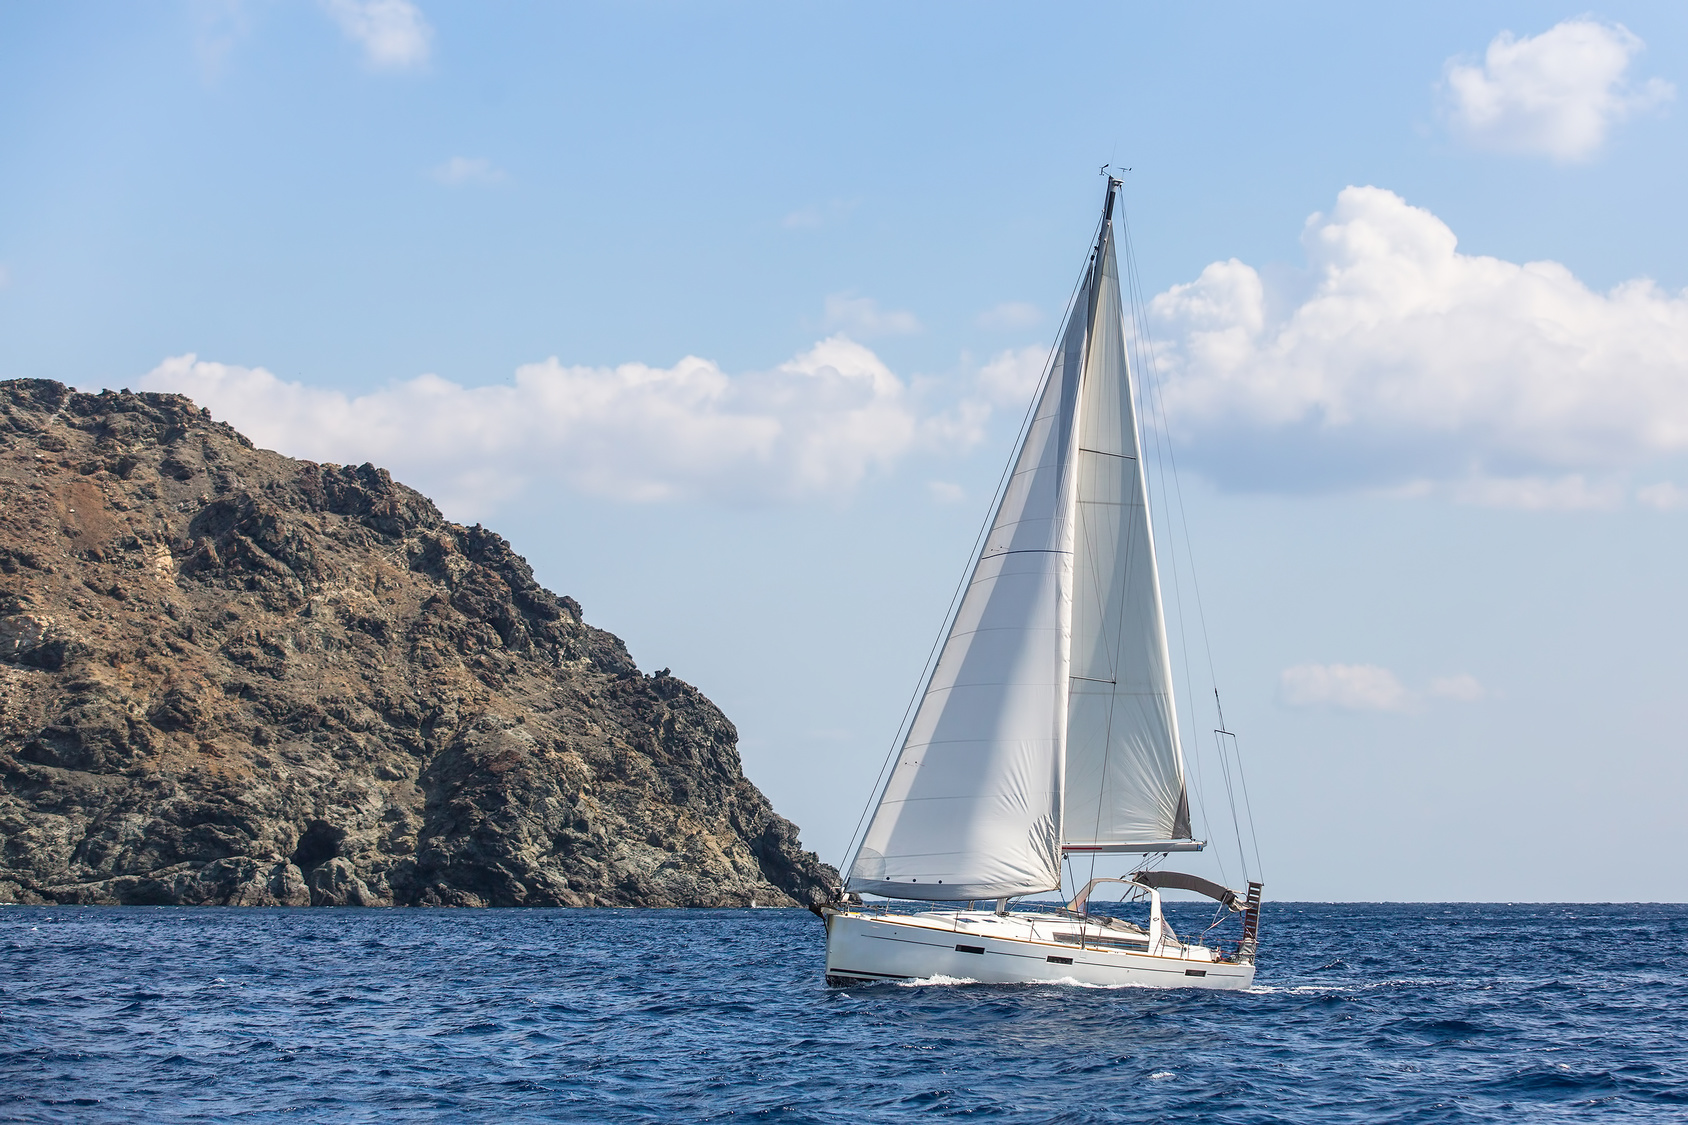 Boats in sailing regatta at Aegean Sea. Luxury yachts.